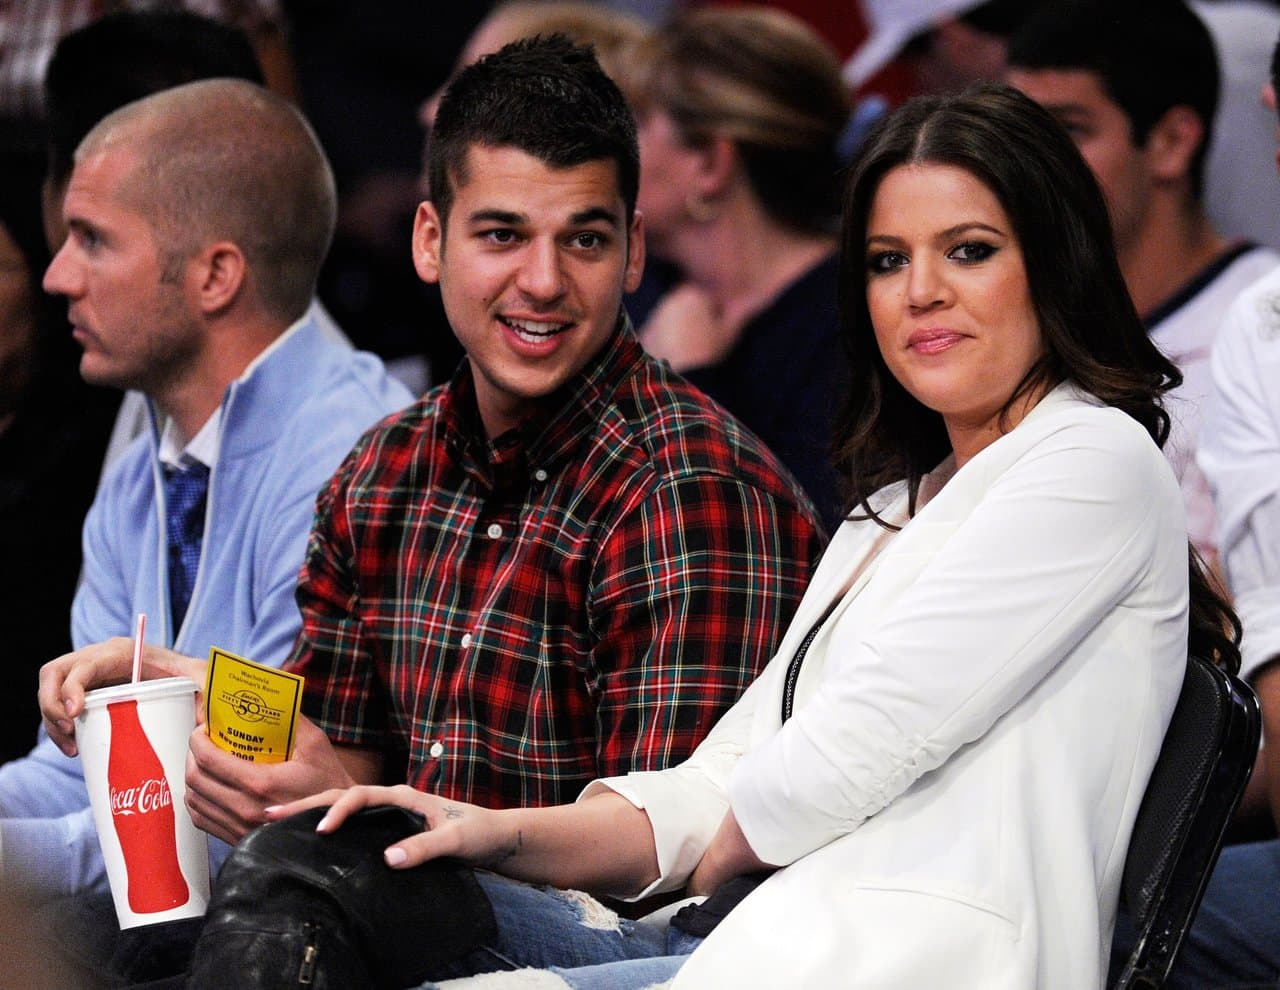 Khloe Kardashian wife of Los Angeles Lakers Lamar Odom #7 and her brother Rob Kardashian follow the action during the NBA basketball game against Atlanta Hawks at Staples Center on November 1, 2009 in Los Angeles, California. (Photo by Kevork Djansezian/Getty Images)